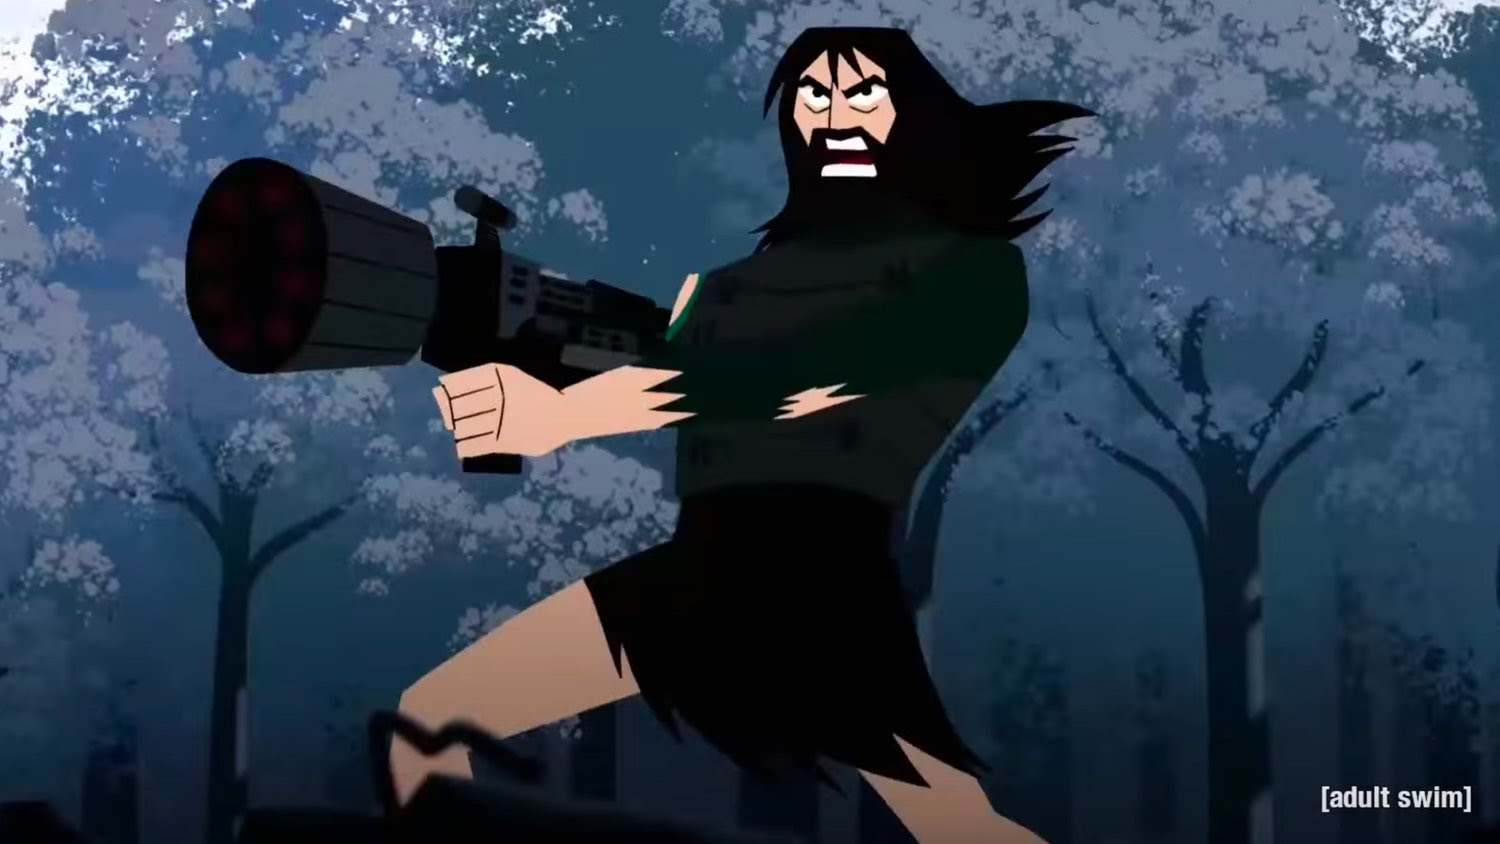 Samurai Jack Featurette Shows New Footage And The Creator